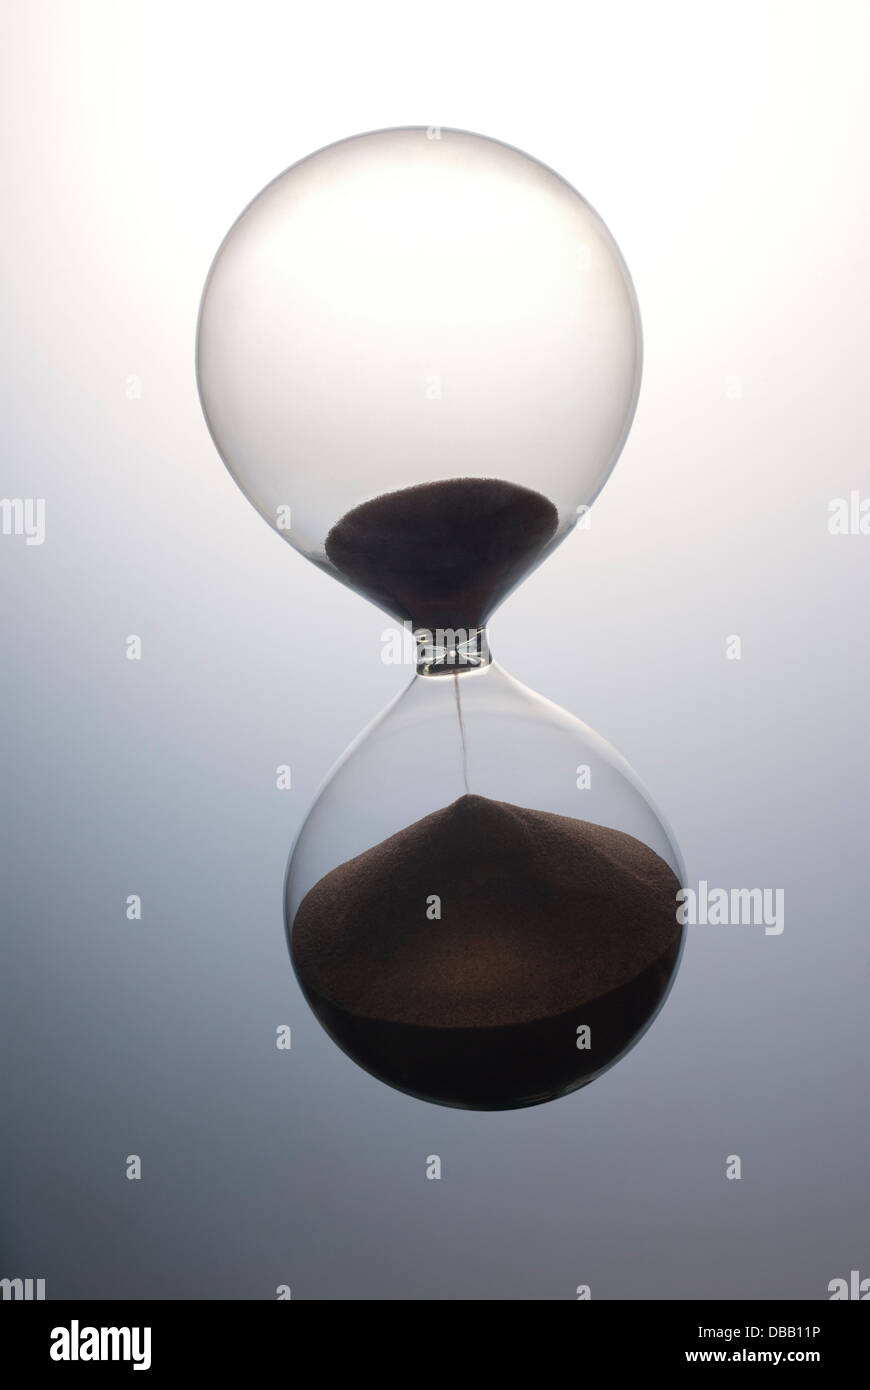 Hour glass sand timer running out of time - Stock Image